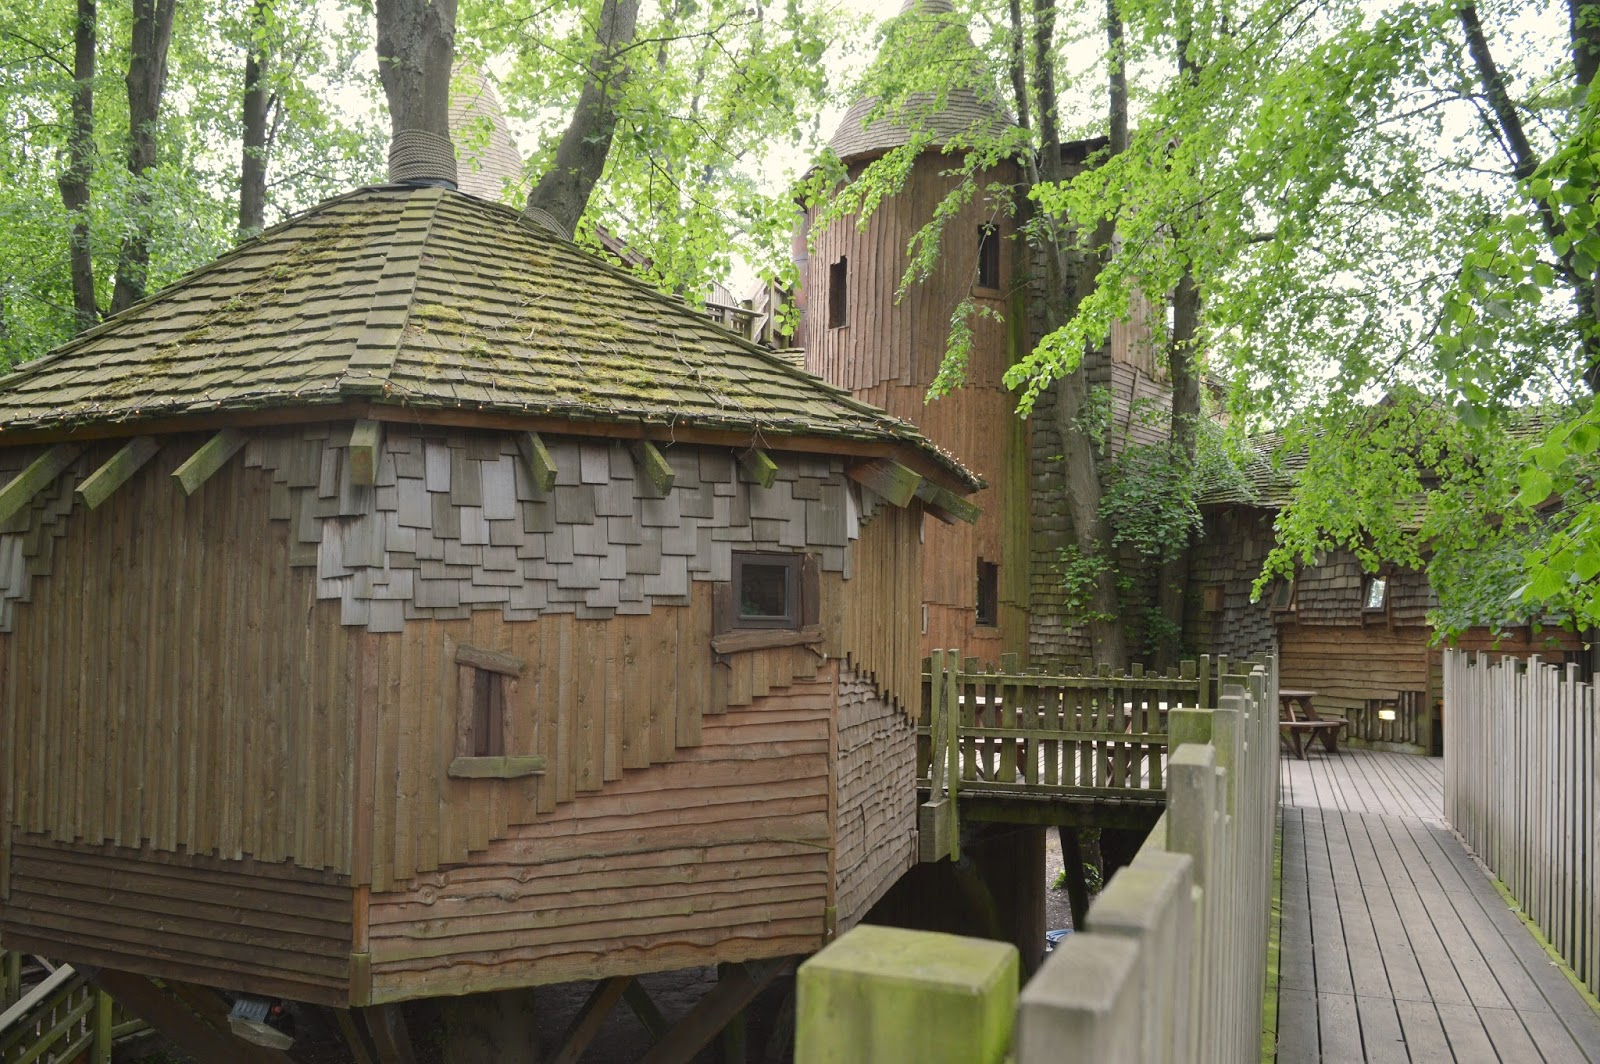 North East Staycation: Alnwick Garden | New Girl in Toon